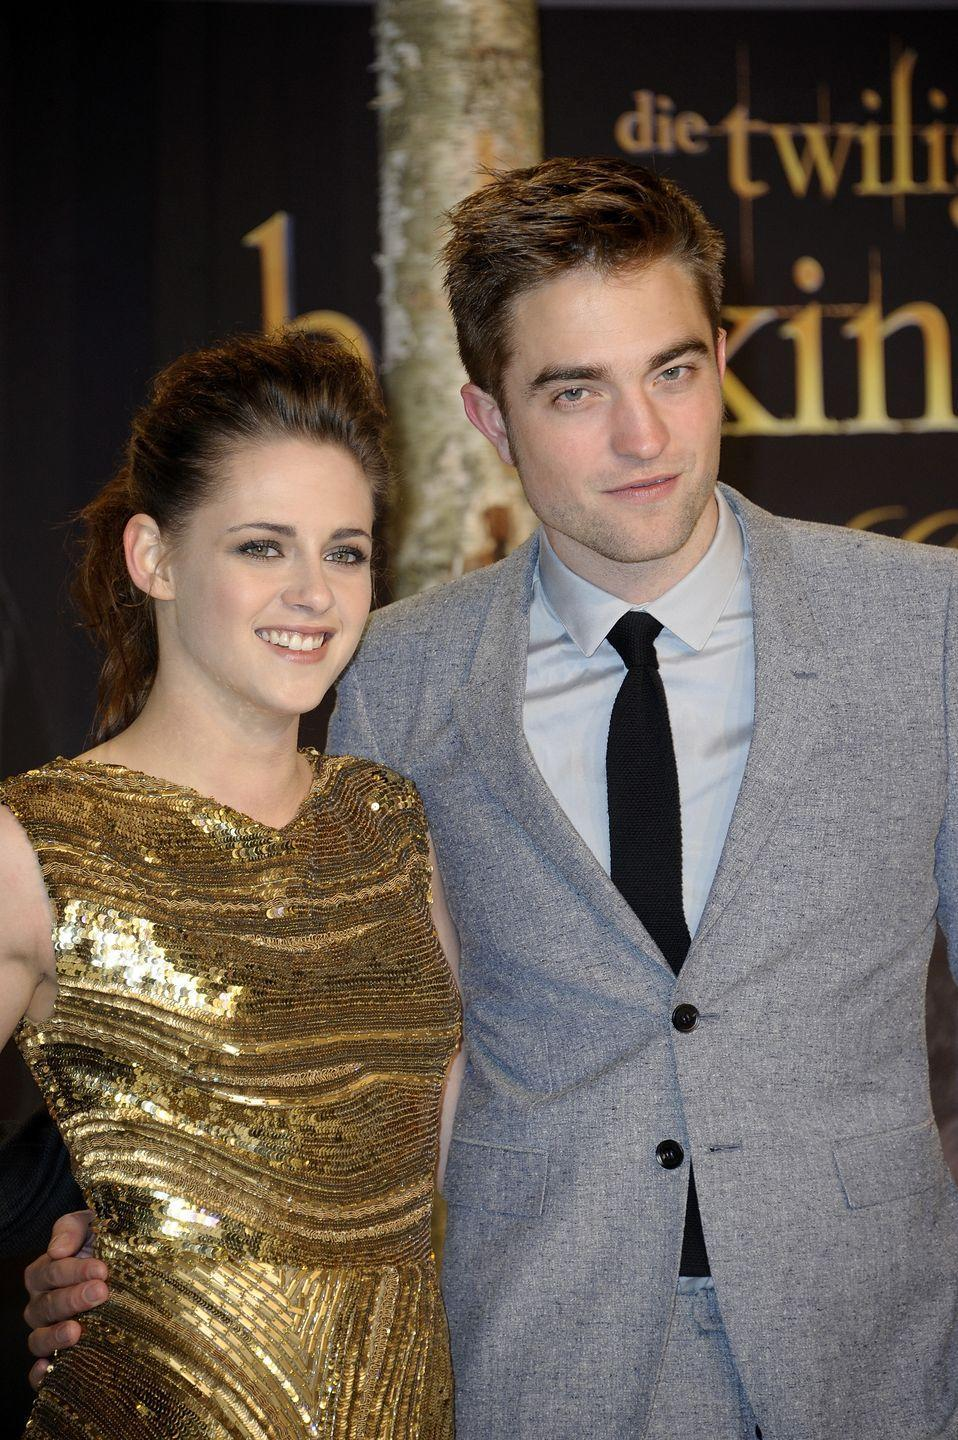 """<p>The <em>Twilight</em> stars fulfilled my 13-year-old self's dreams by dating IRL. Then, they crushed them when photos of Kristen getting cozy with another man (her married director for <em>Snow White and the Huntsman</em>) surfaced in 2012, according to <a href=""""https://www.eonline.com/news/869256/kristen-stewart-and-robert-pattinson-5-years-later-how-they-bounced-back-after-the-affair"""" rel=""""nofollow noopener"""" target=""""_blank"""" data-ylk=""""slk:E! News"""" class=""""link rapid-noclick-resp""""><em>E! News</em></a>. After Kristen publicly apologized, R-Patz forgave her...but the two broke up the following year.</p>"""